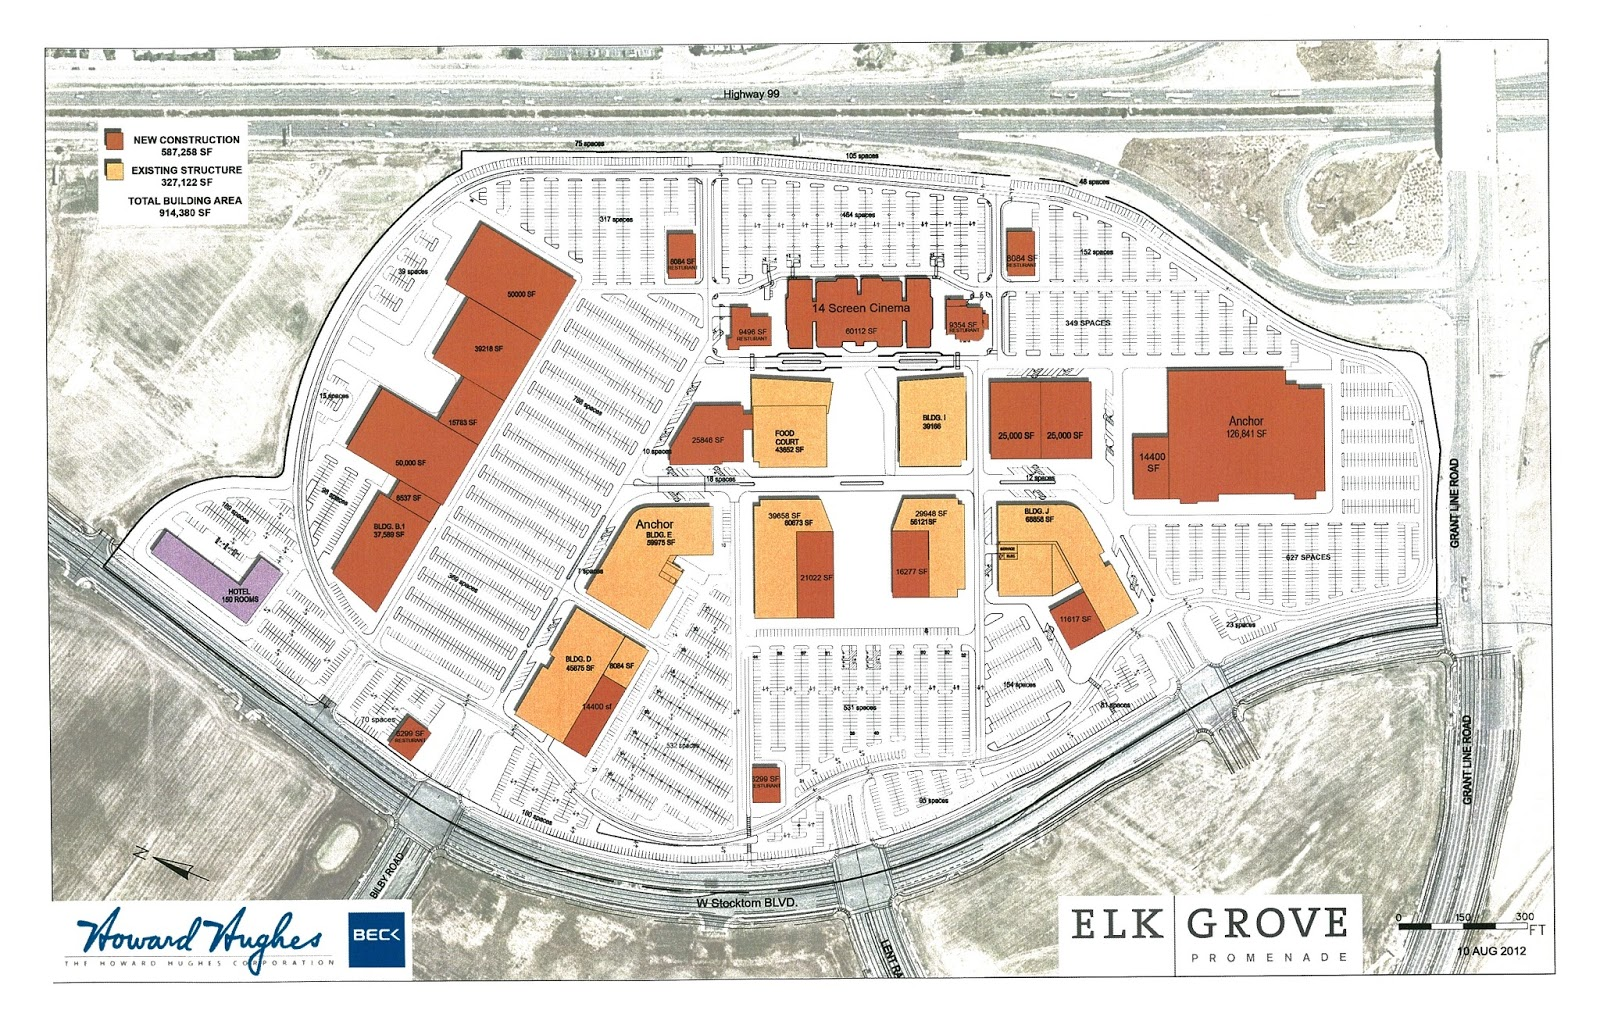 Elk Grove City Council Approves Mall Re-design, But Litigation Could Stall Project